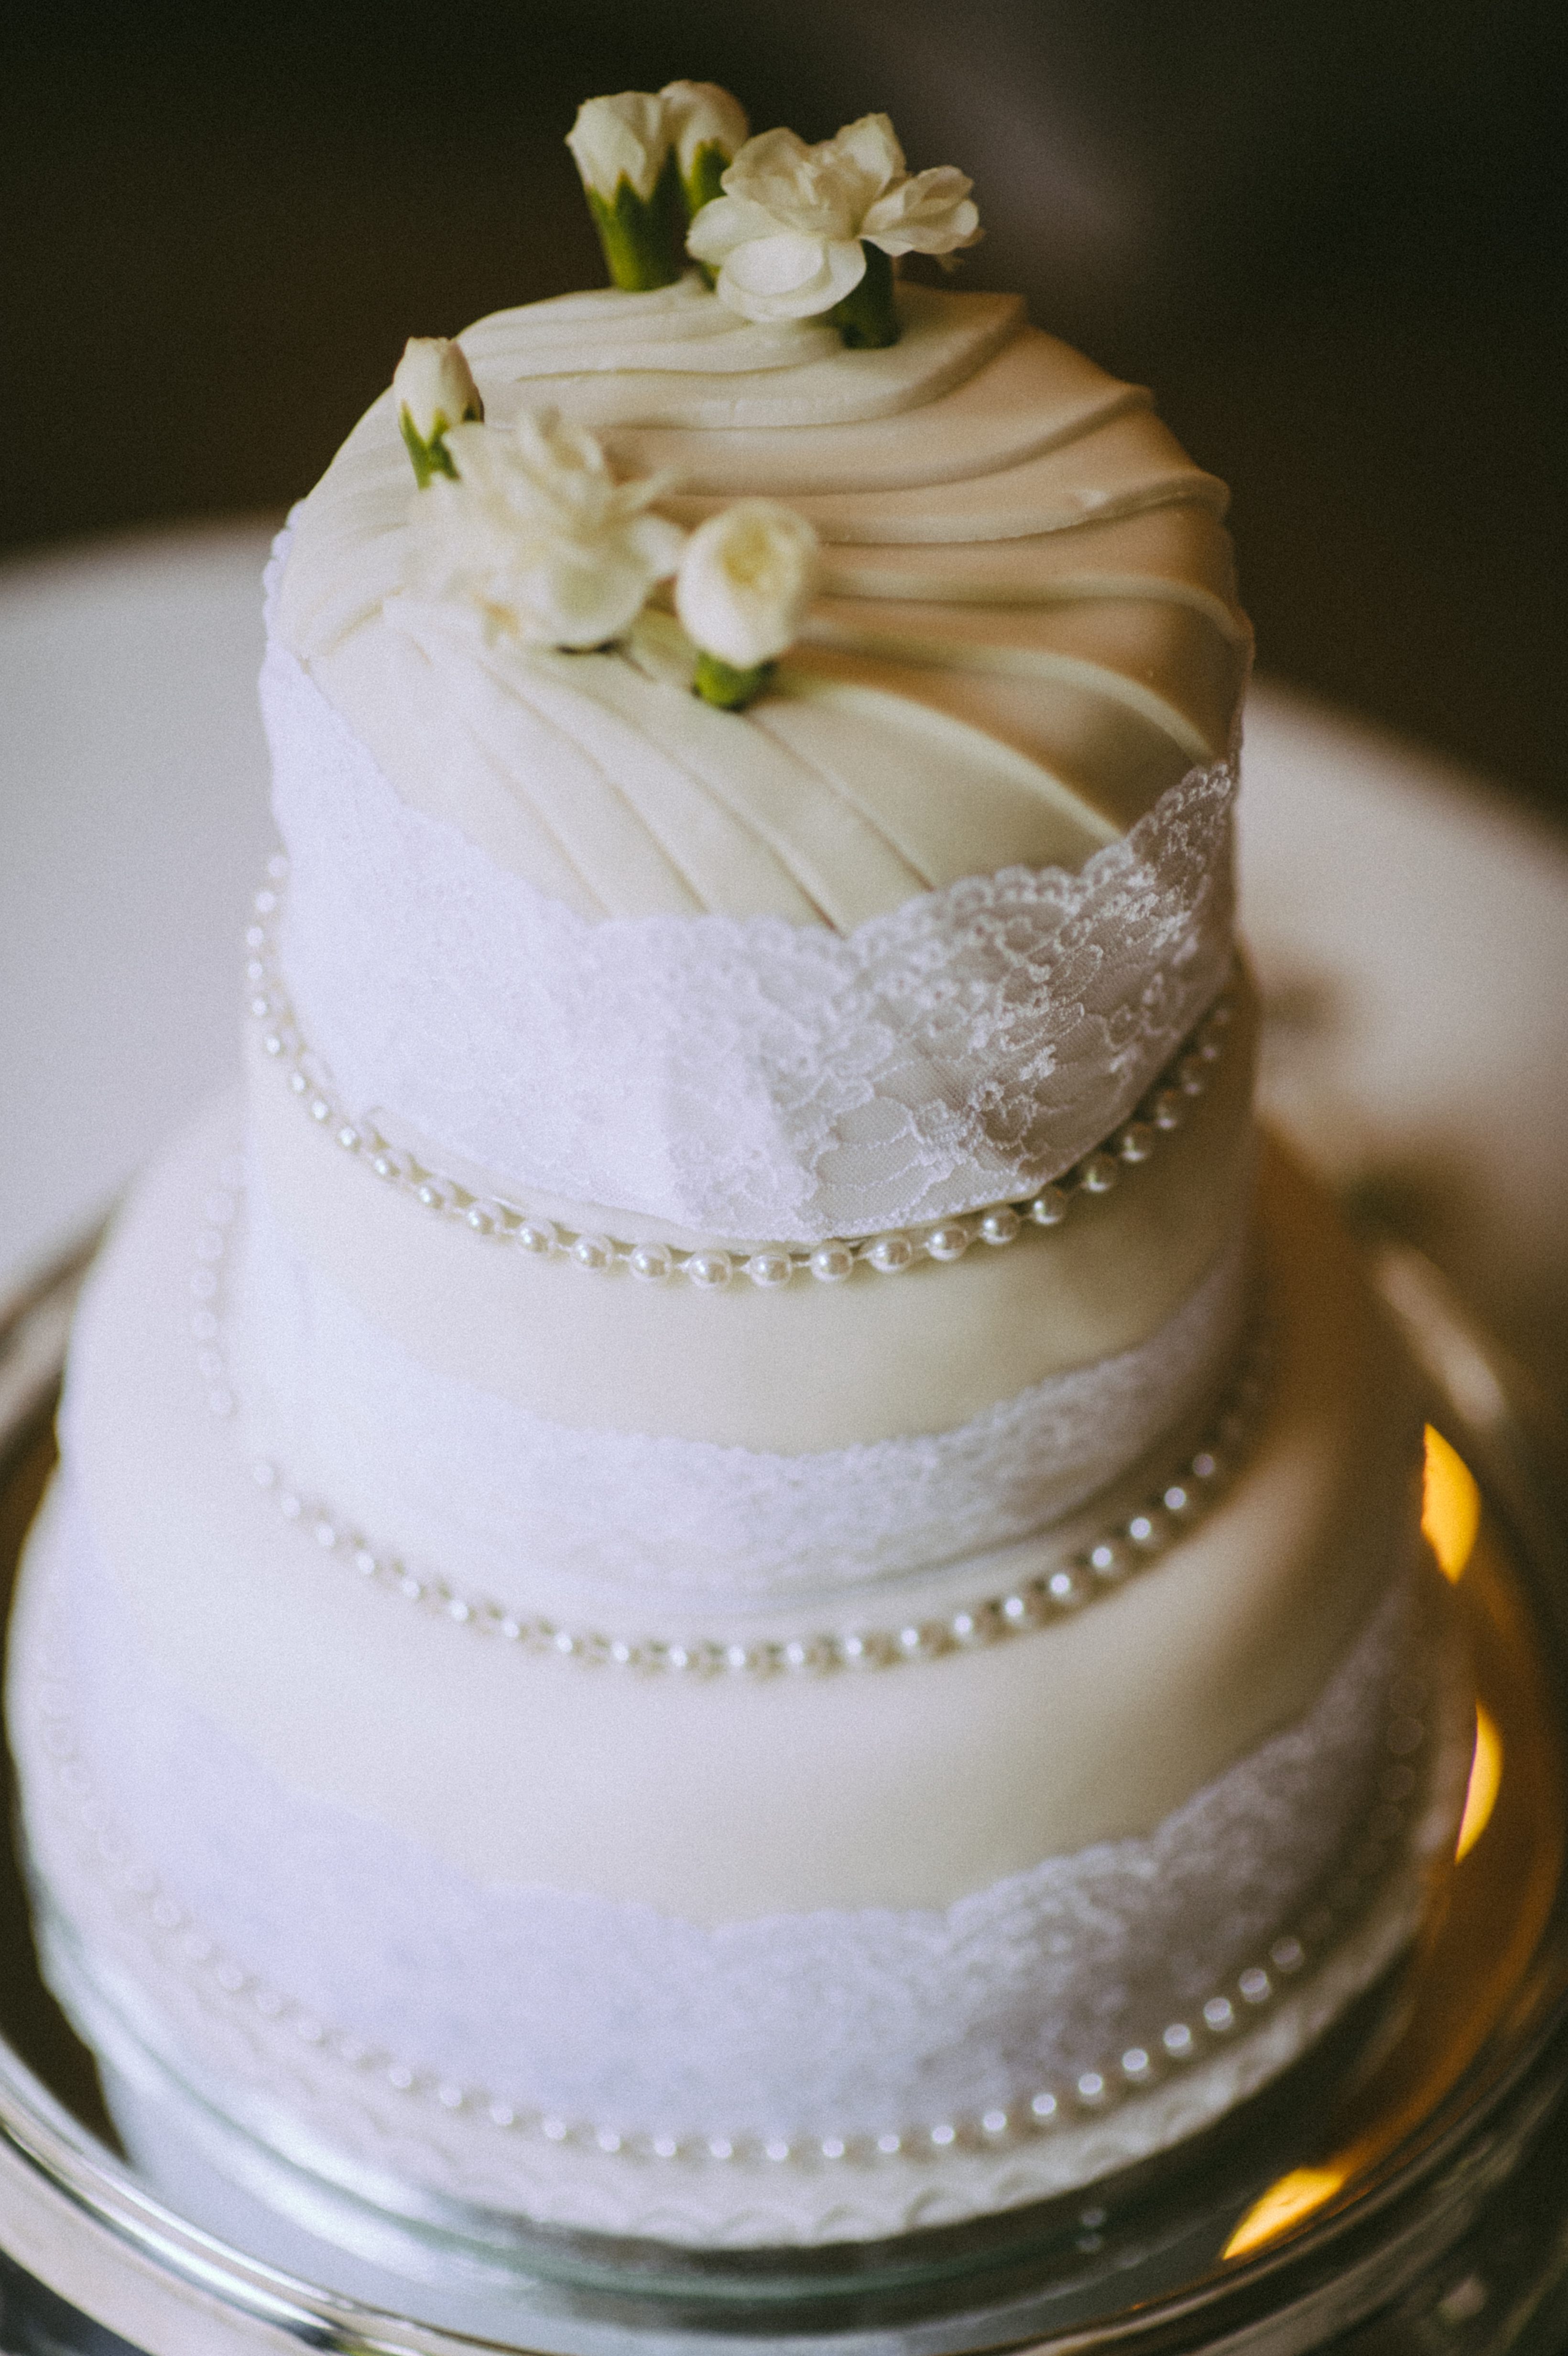 wedding photographers devon wedding cake.jpg